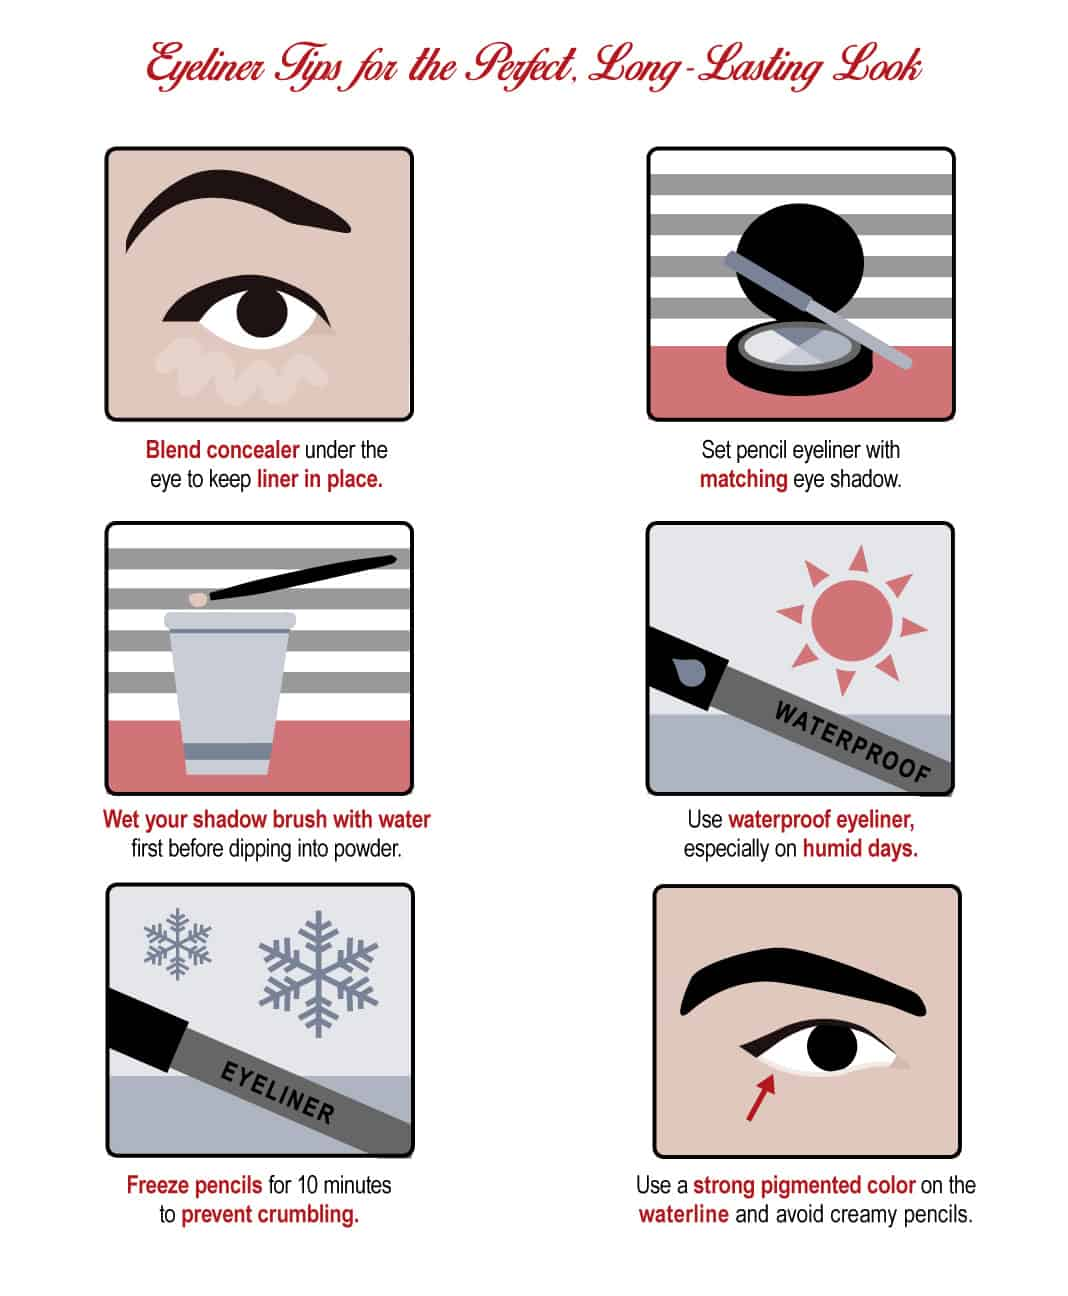 Eyeliner Tips for the Perfect, Long-Lasting Look